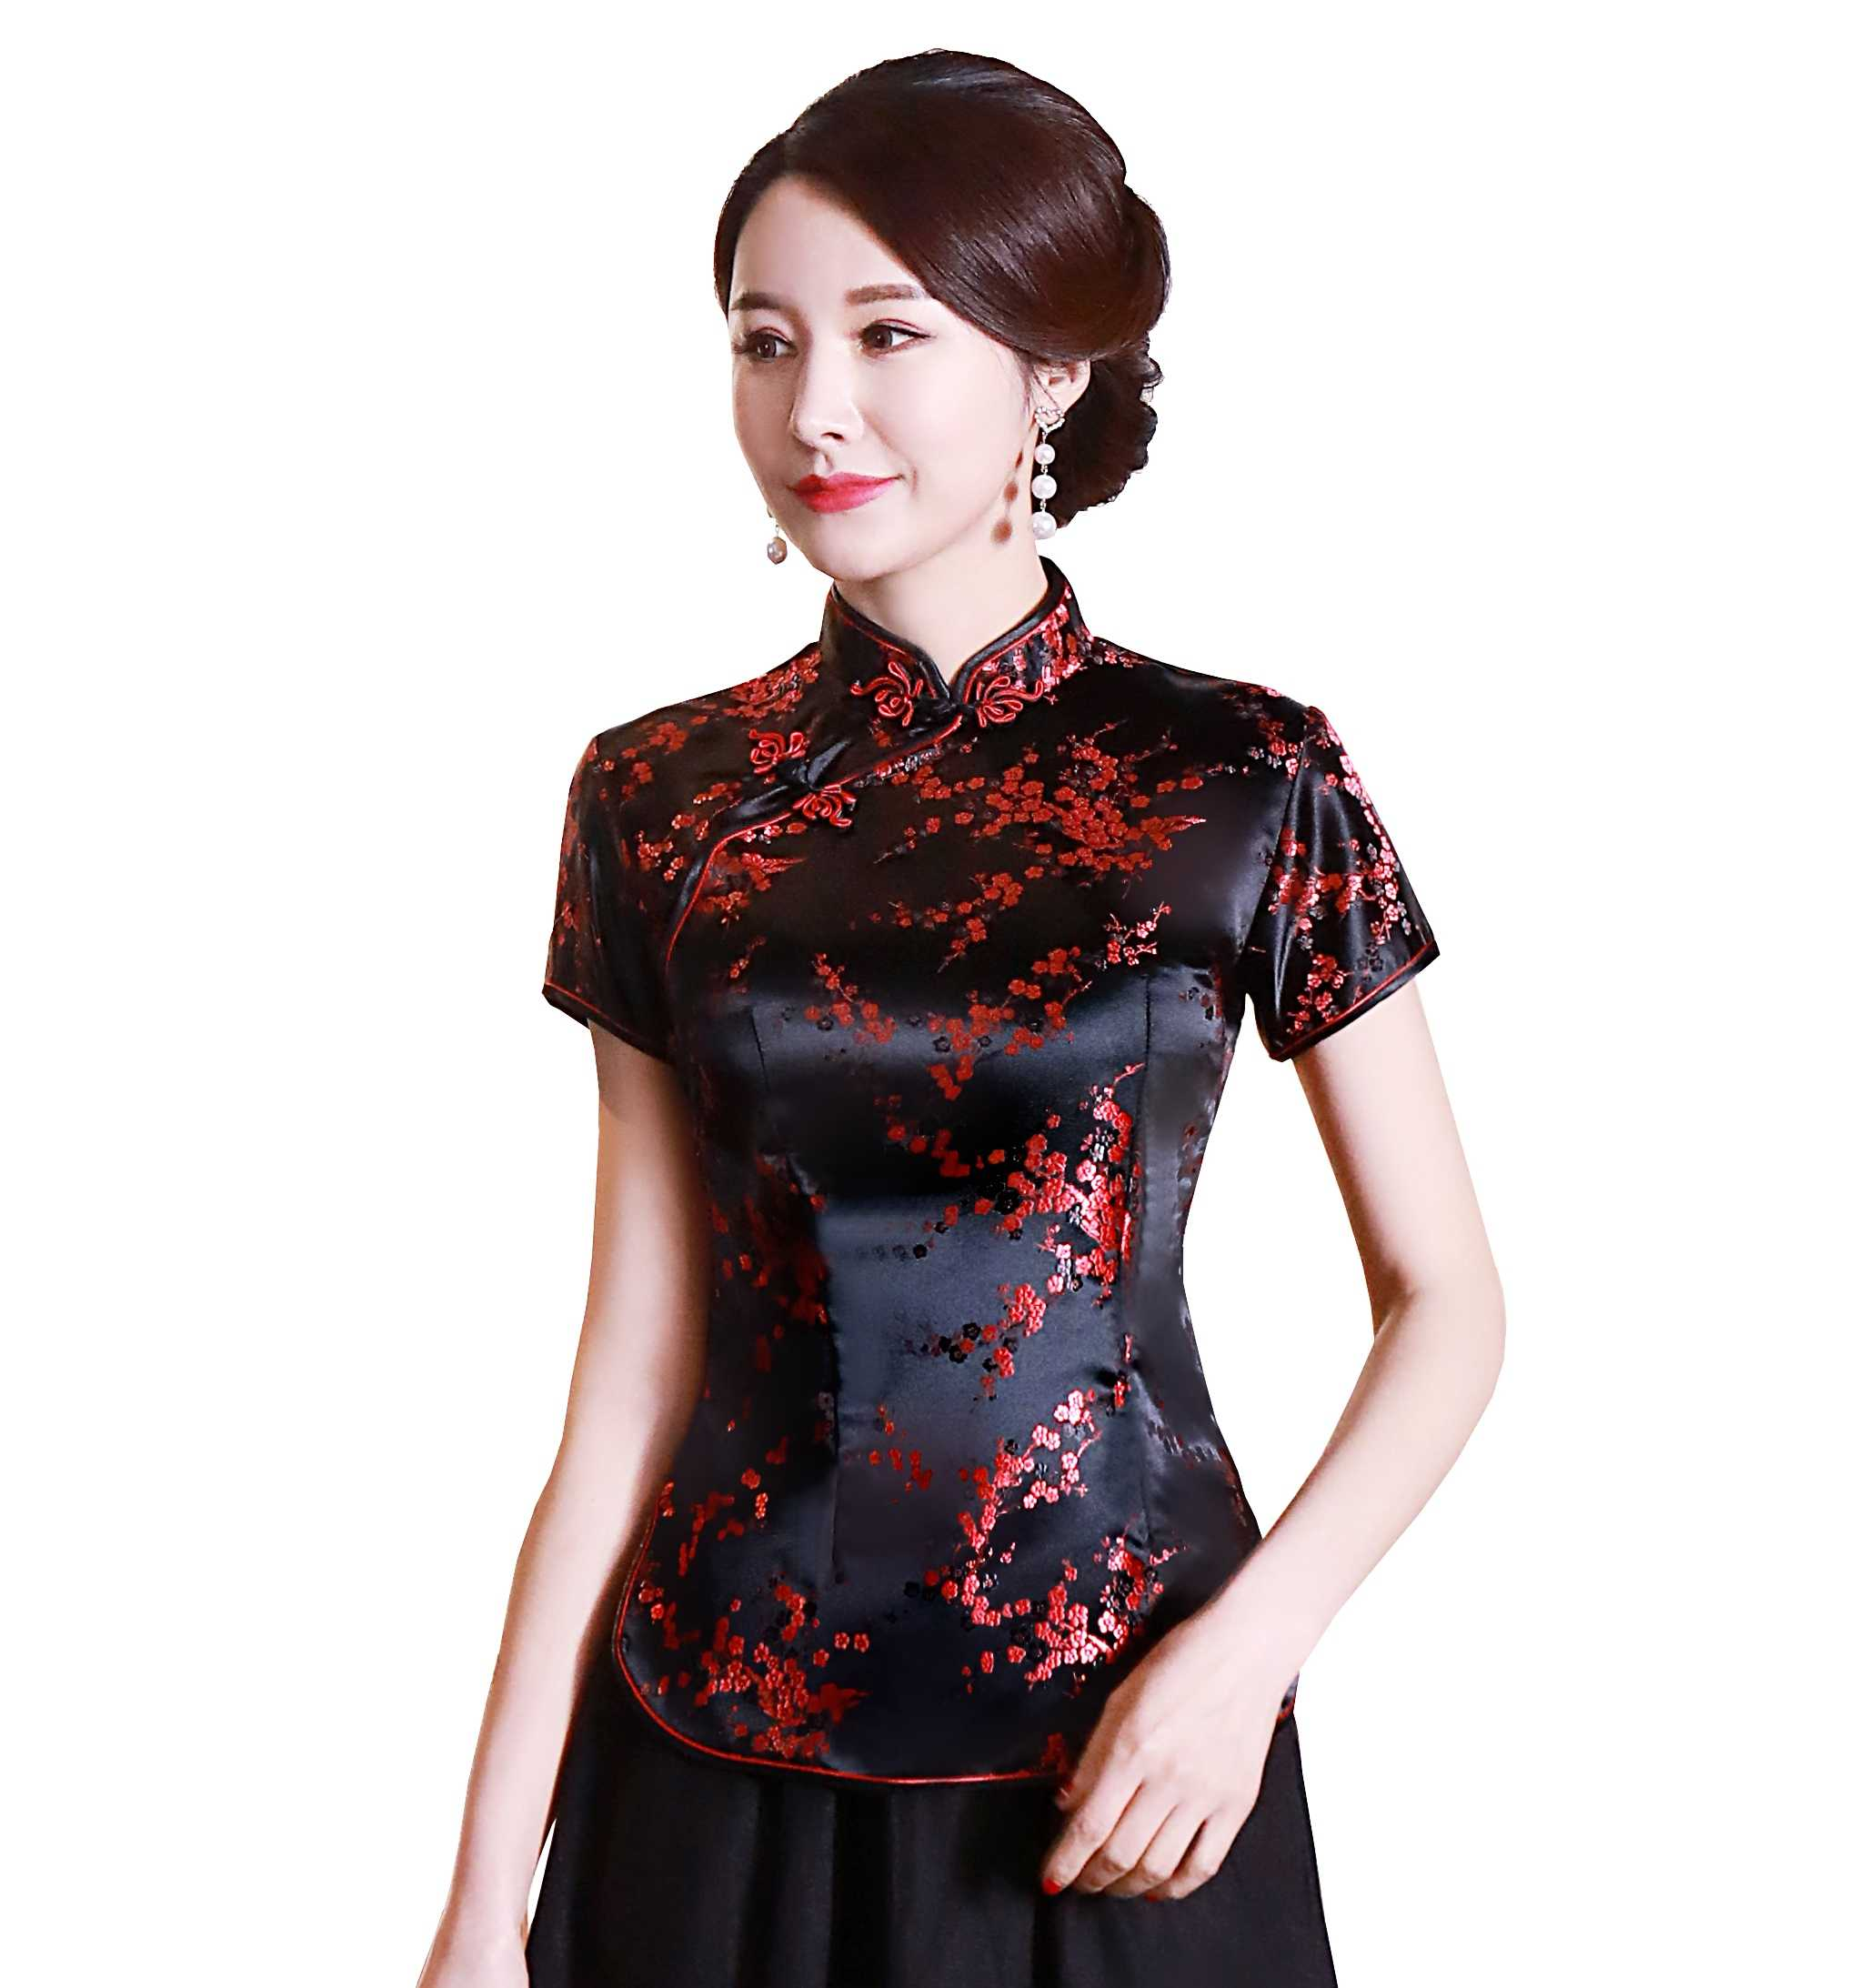 Shanghai Verhaal Korte Cheongsam top traditionele Chinese Faux Zijde/Satijn Top draak en phoenix Borduurwerk blouse top Qipao Shirt